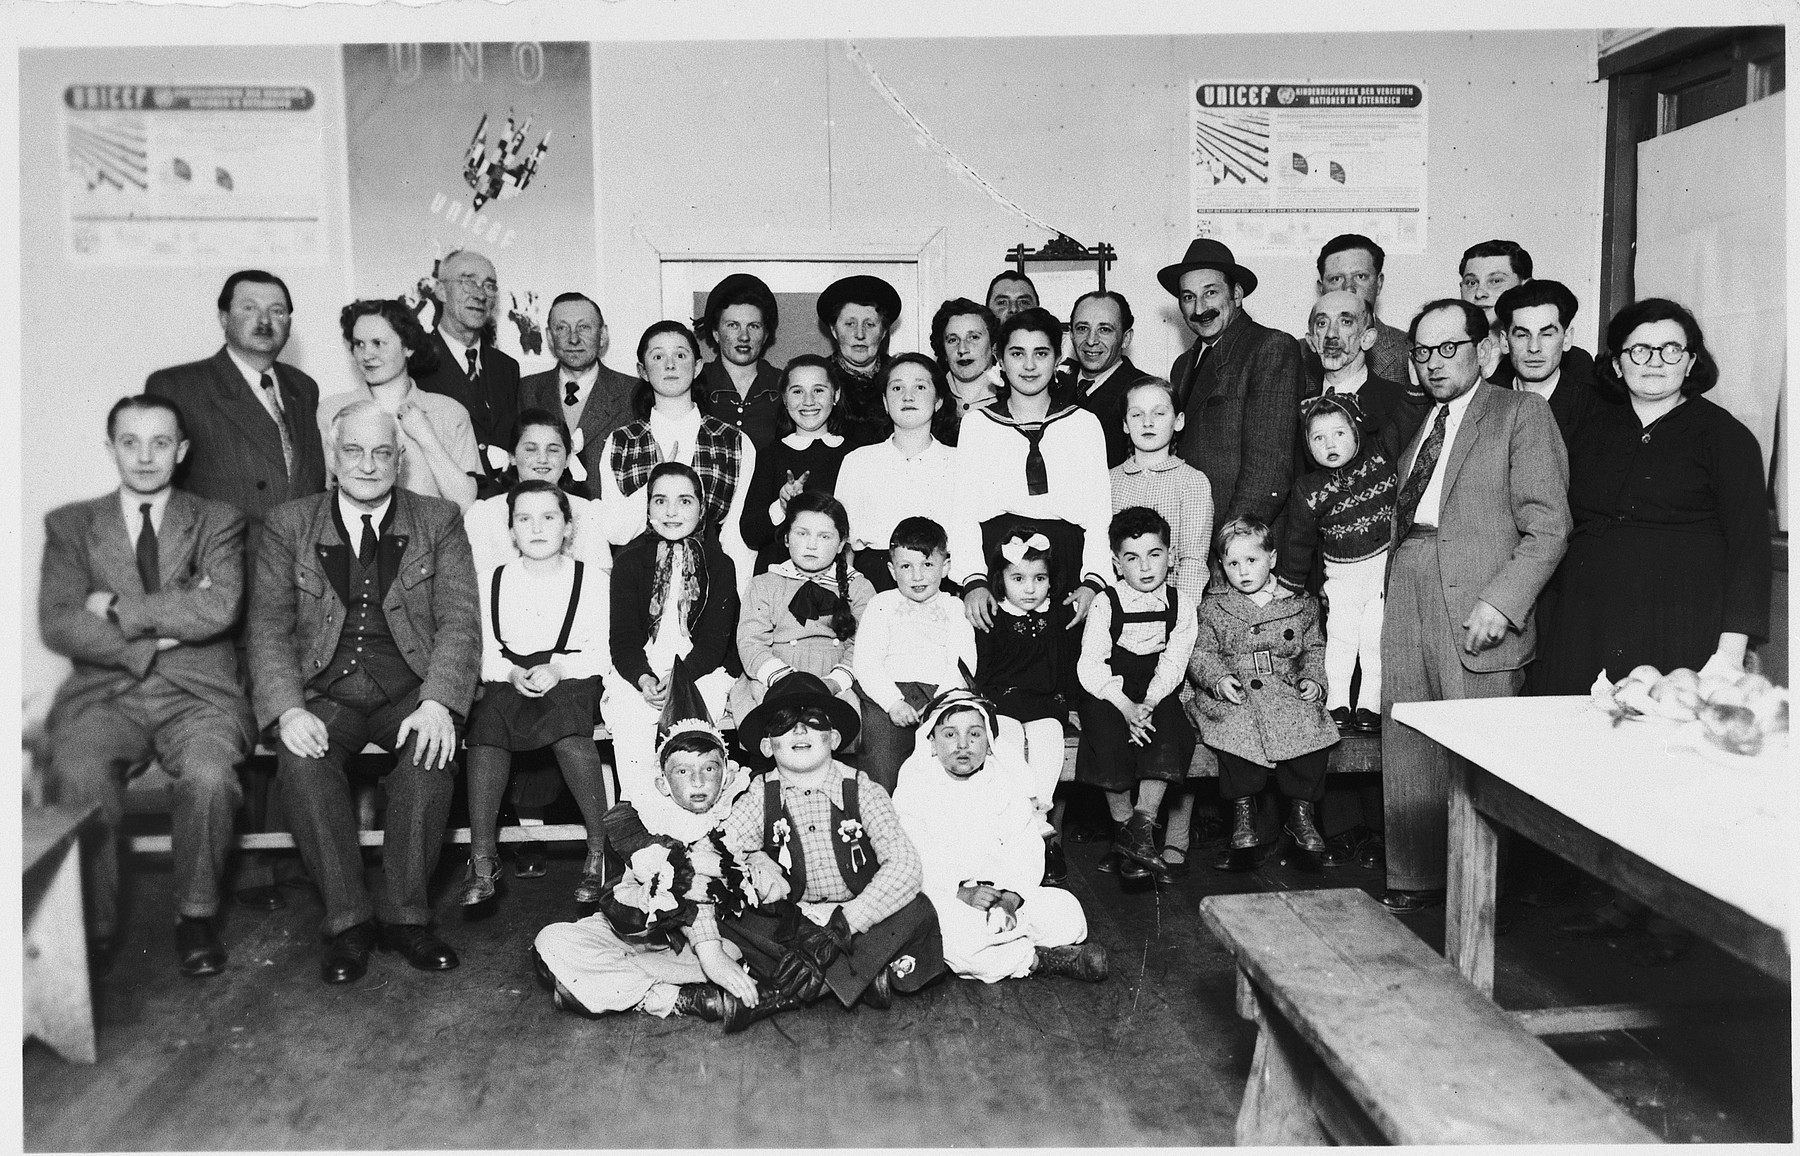 Children and adults in the Wels DP camp pose for a group portrait in their Purim costumes.